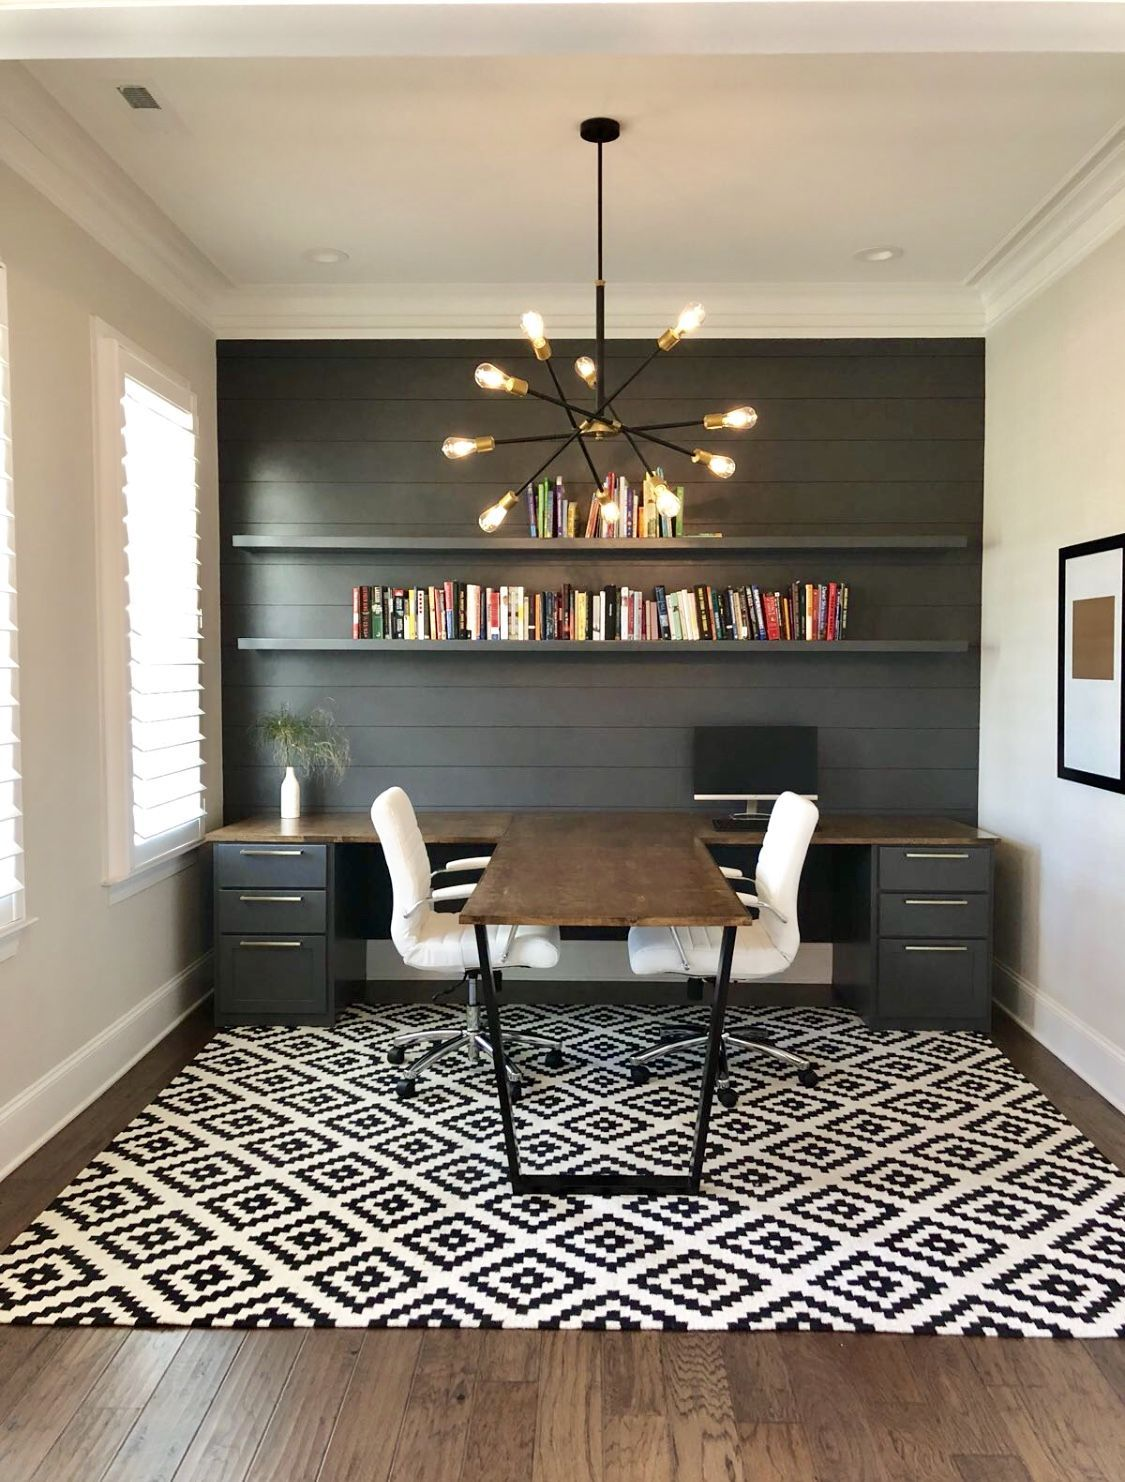 Find The Best Idea To Make A Home Office For Two Sharing A Home Office Sounds Like A Good Idea At First Glanc Brown Rooms Home Office Decor Home Office Design